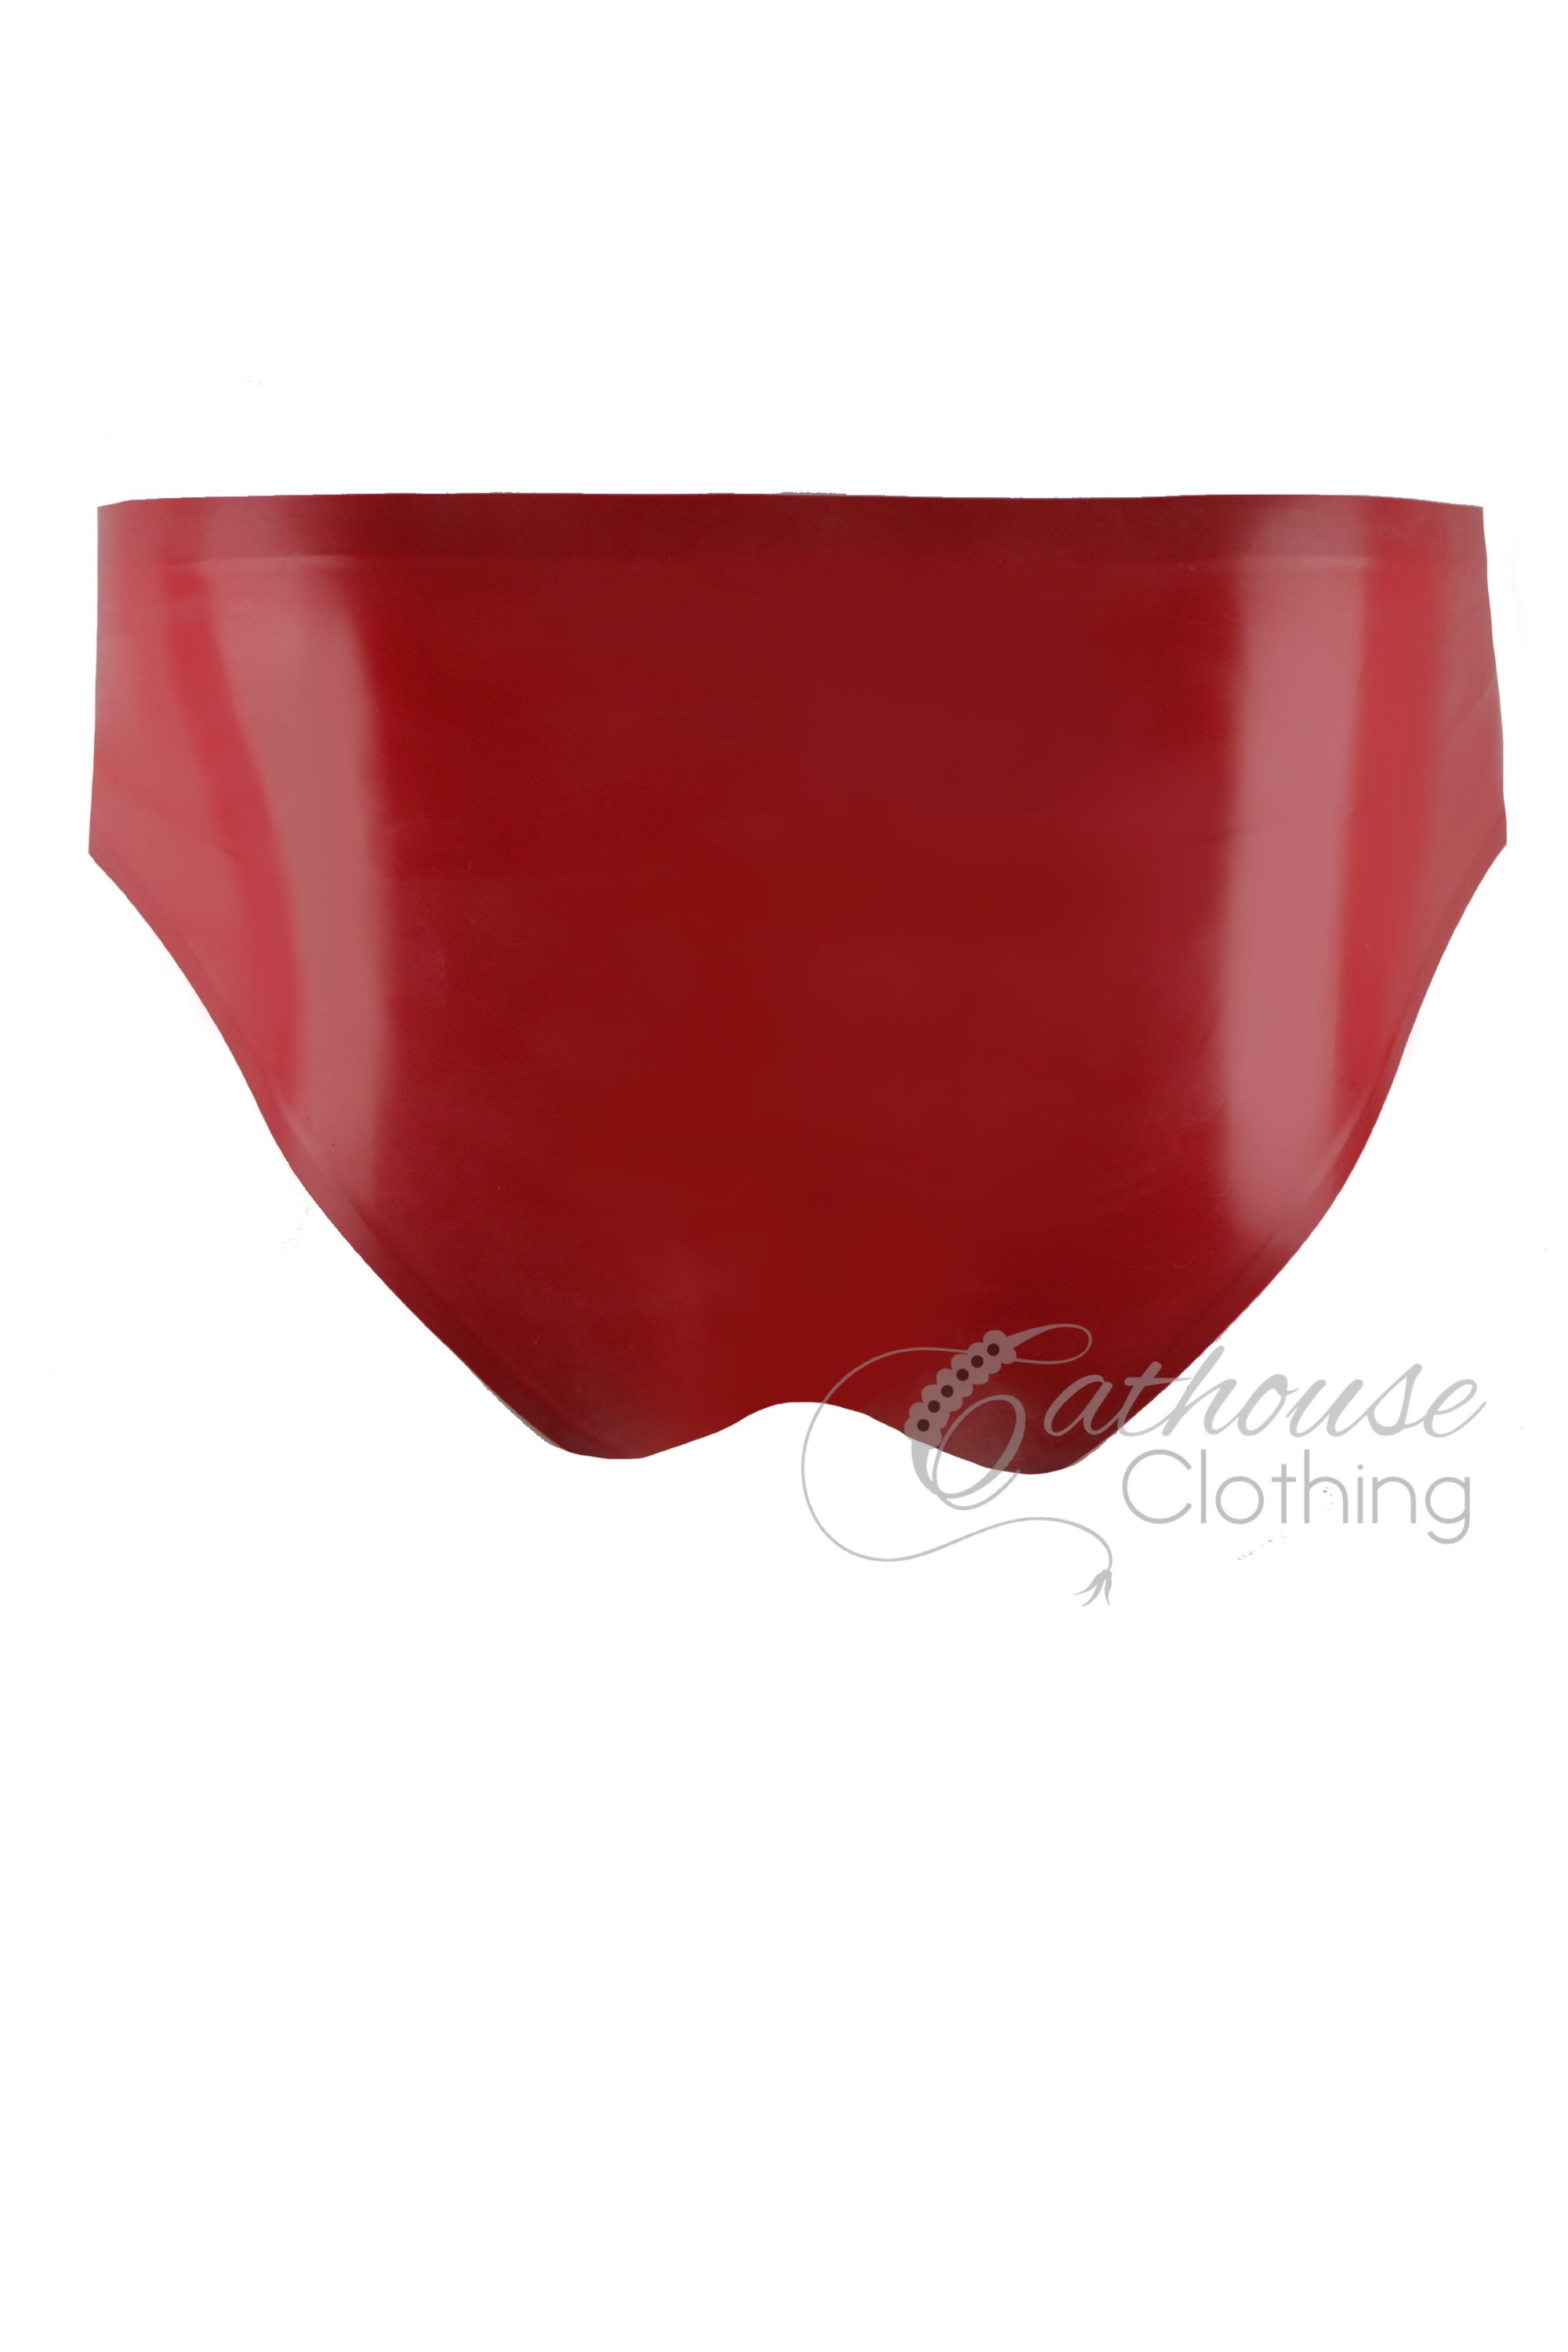 Men's Latex Briefs